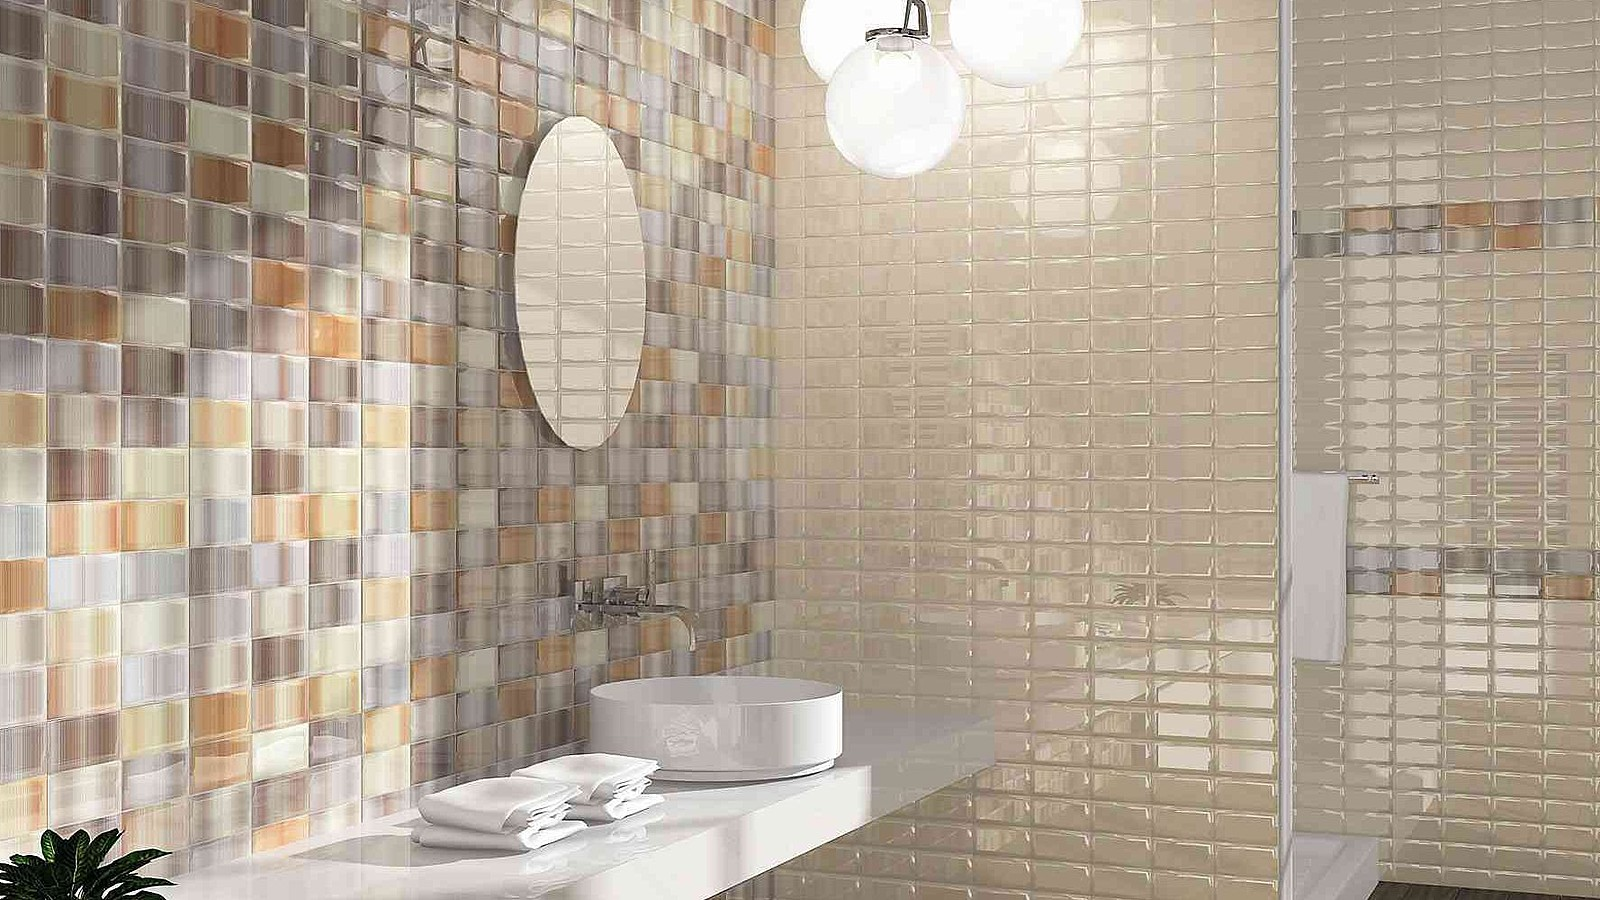 Ceramic Tile Stores Michigan Images Tile Flooring Design Ideas